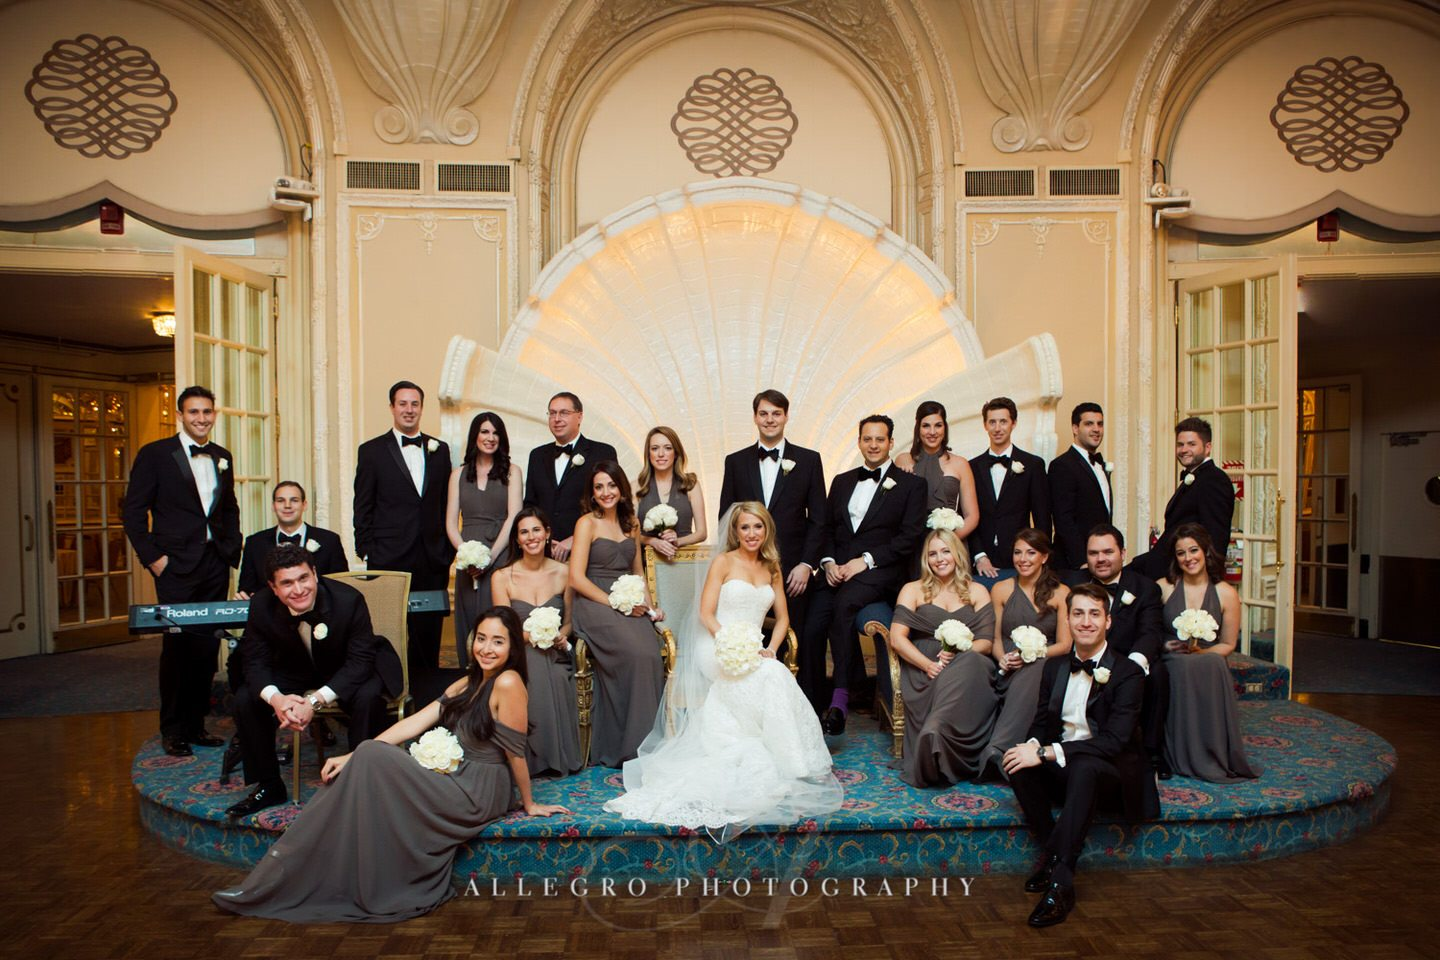 vogue style vanity fair inspired wedding party portraits - fairmont copley plaza wedding photo by Allegro Photography